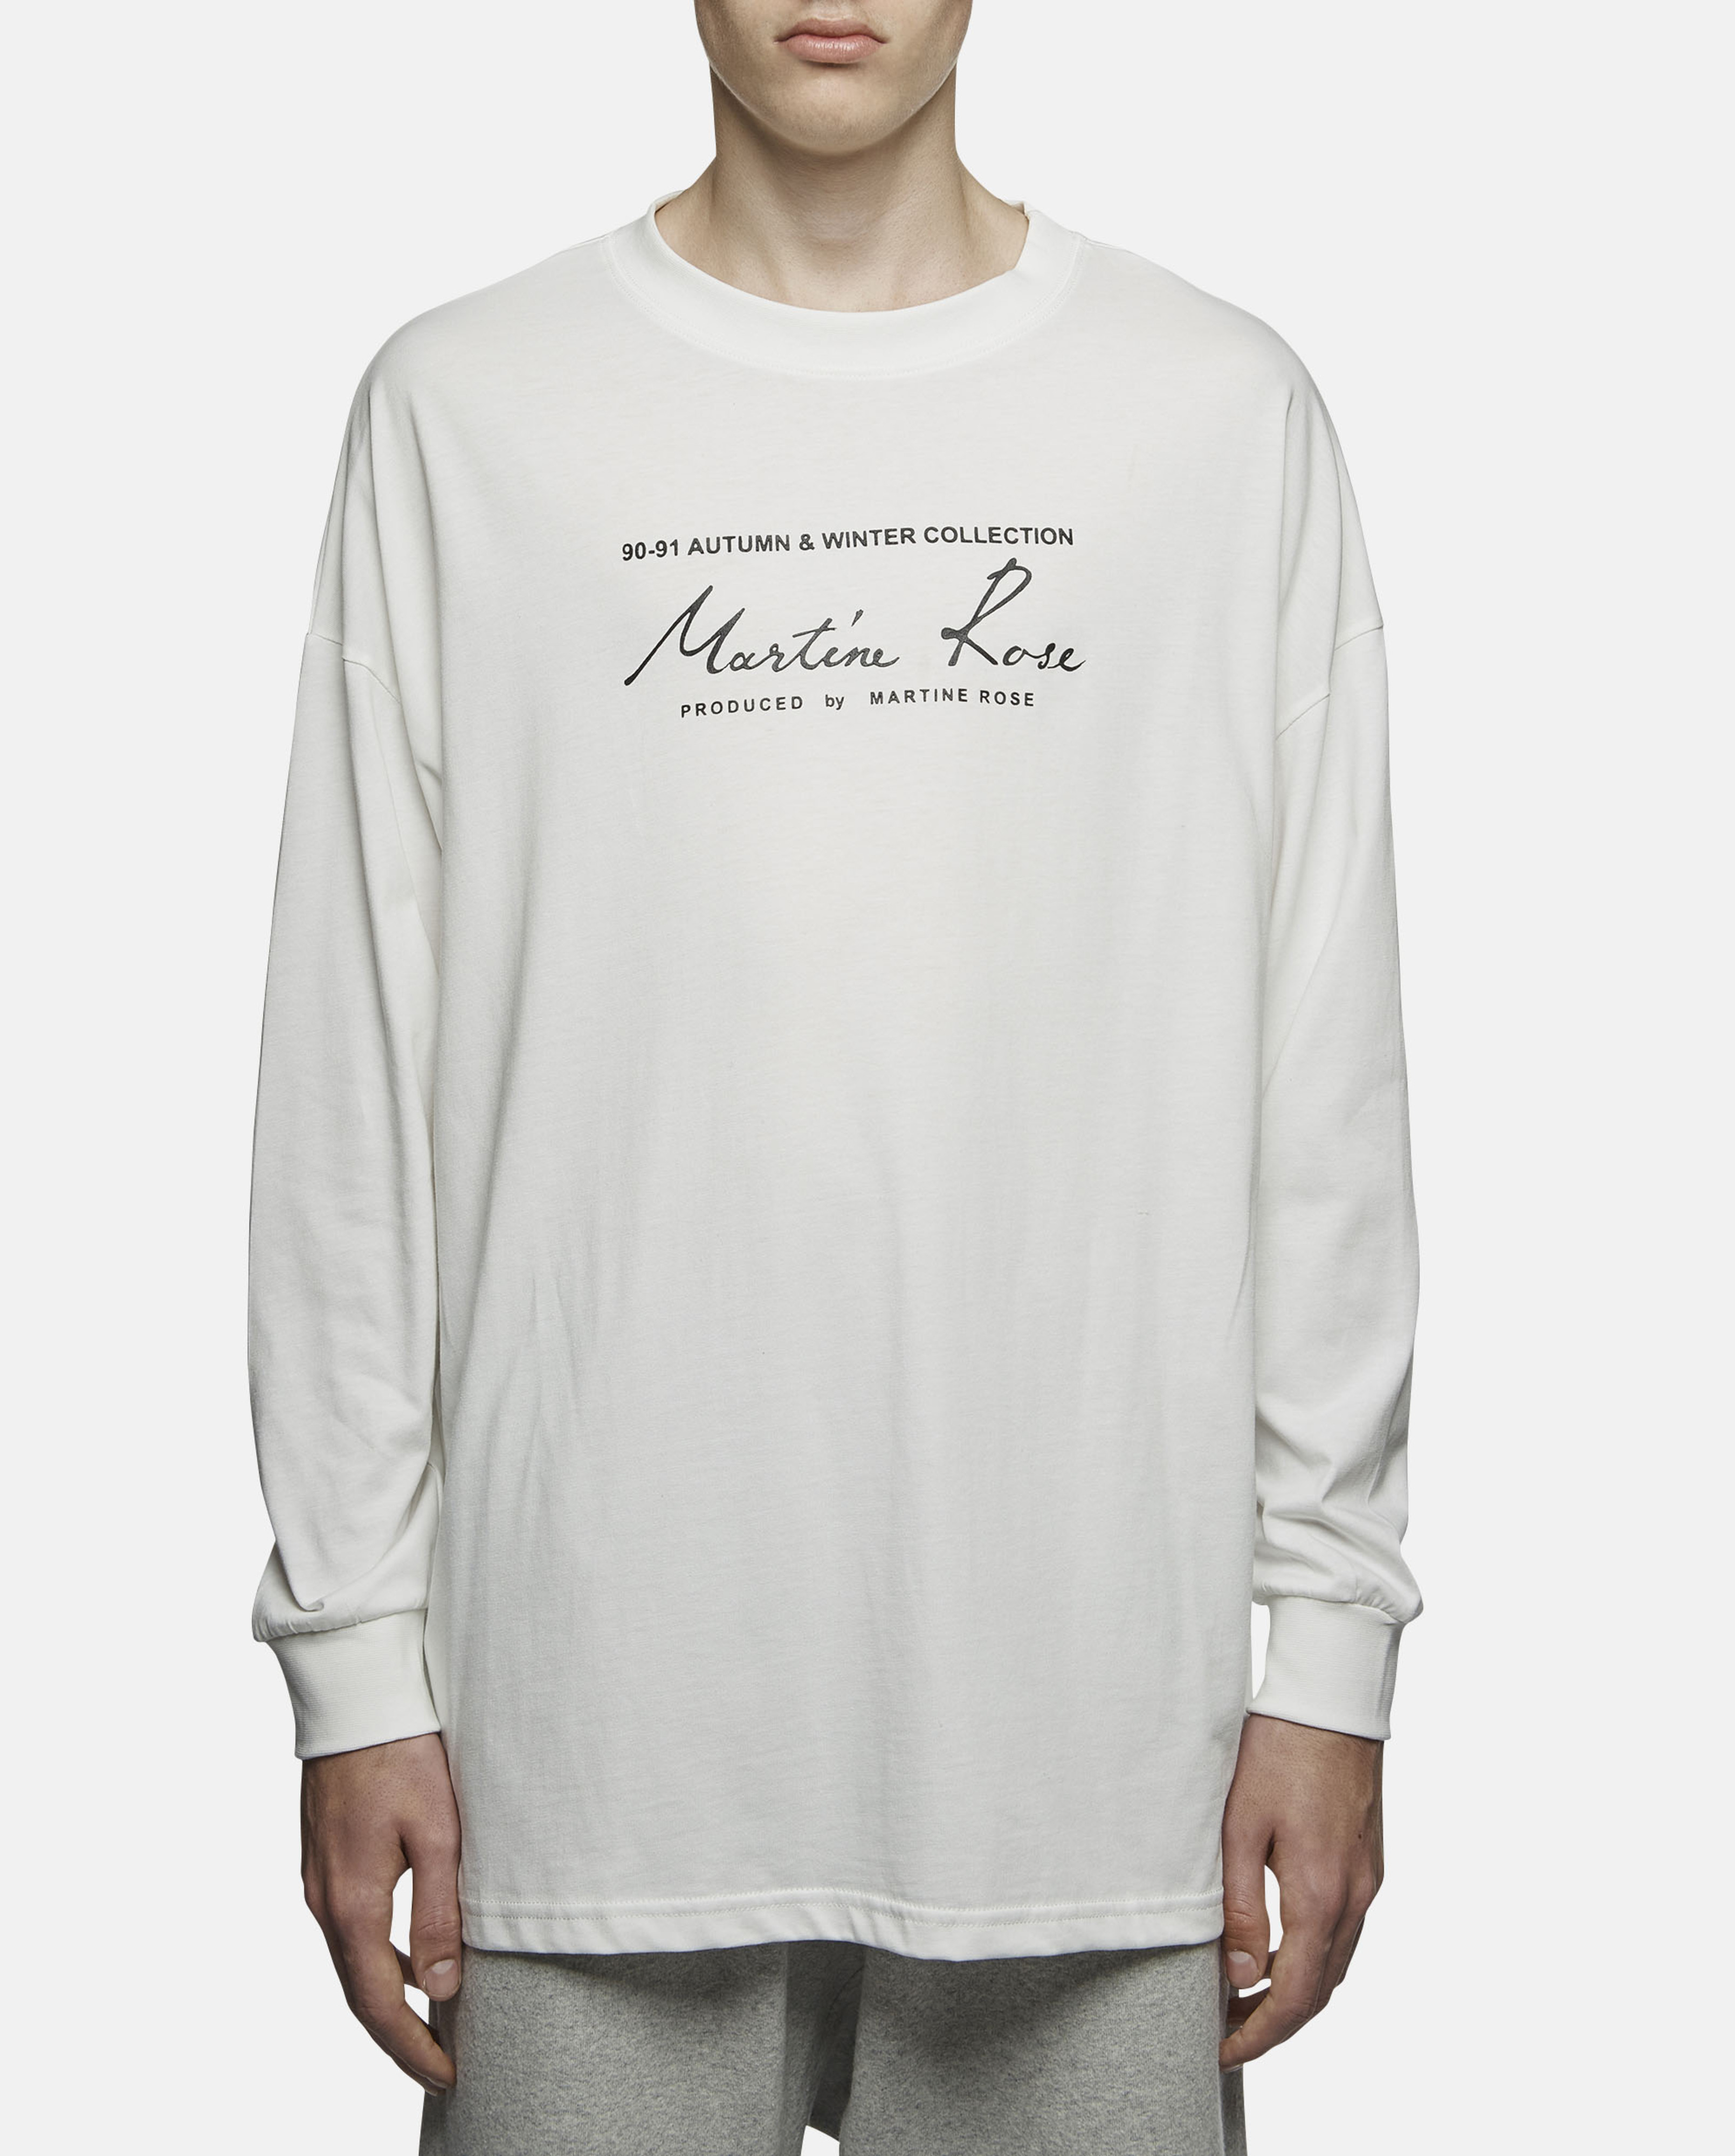 db75f1818 Martine Rose Classic Logo Long Sleeve T-shirt for Men - Lyst